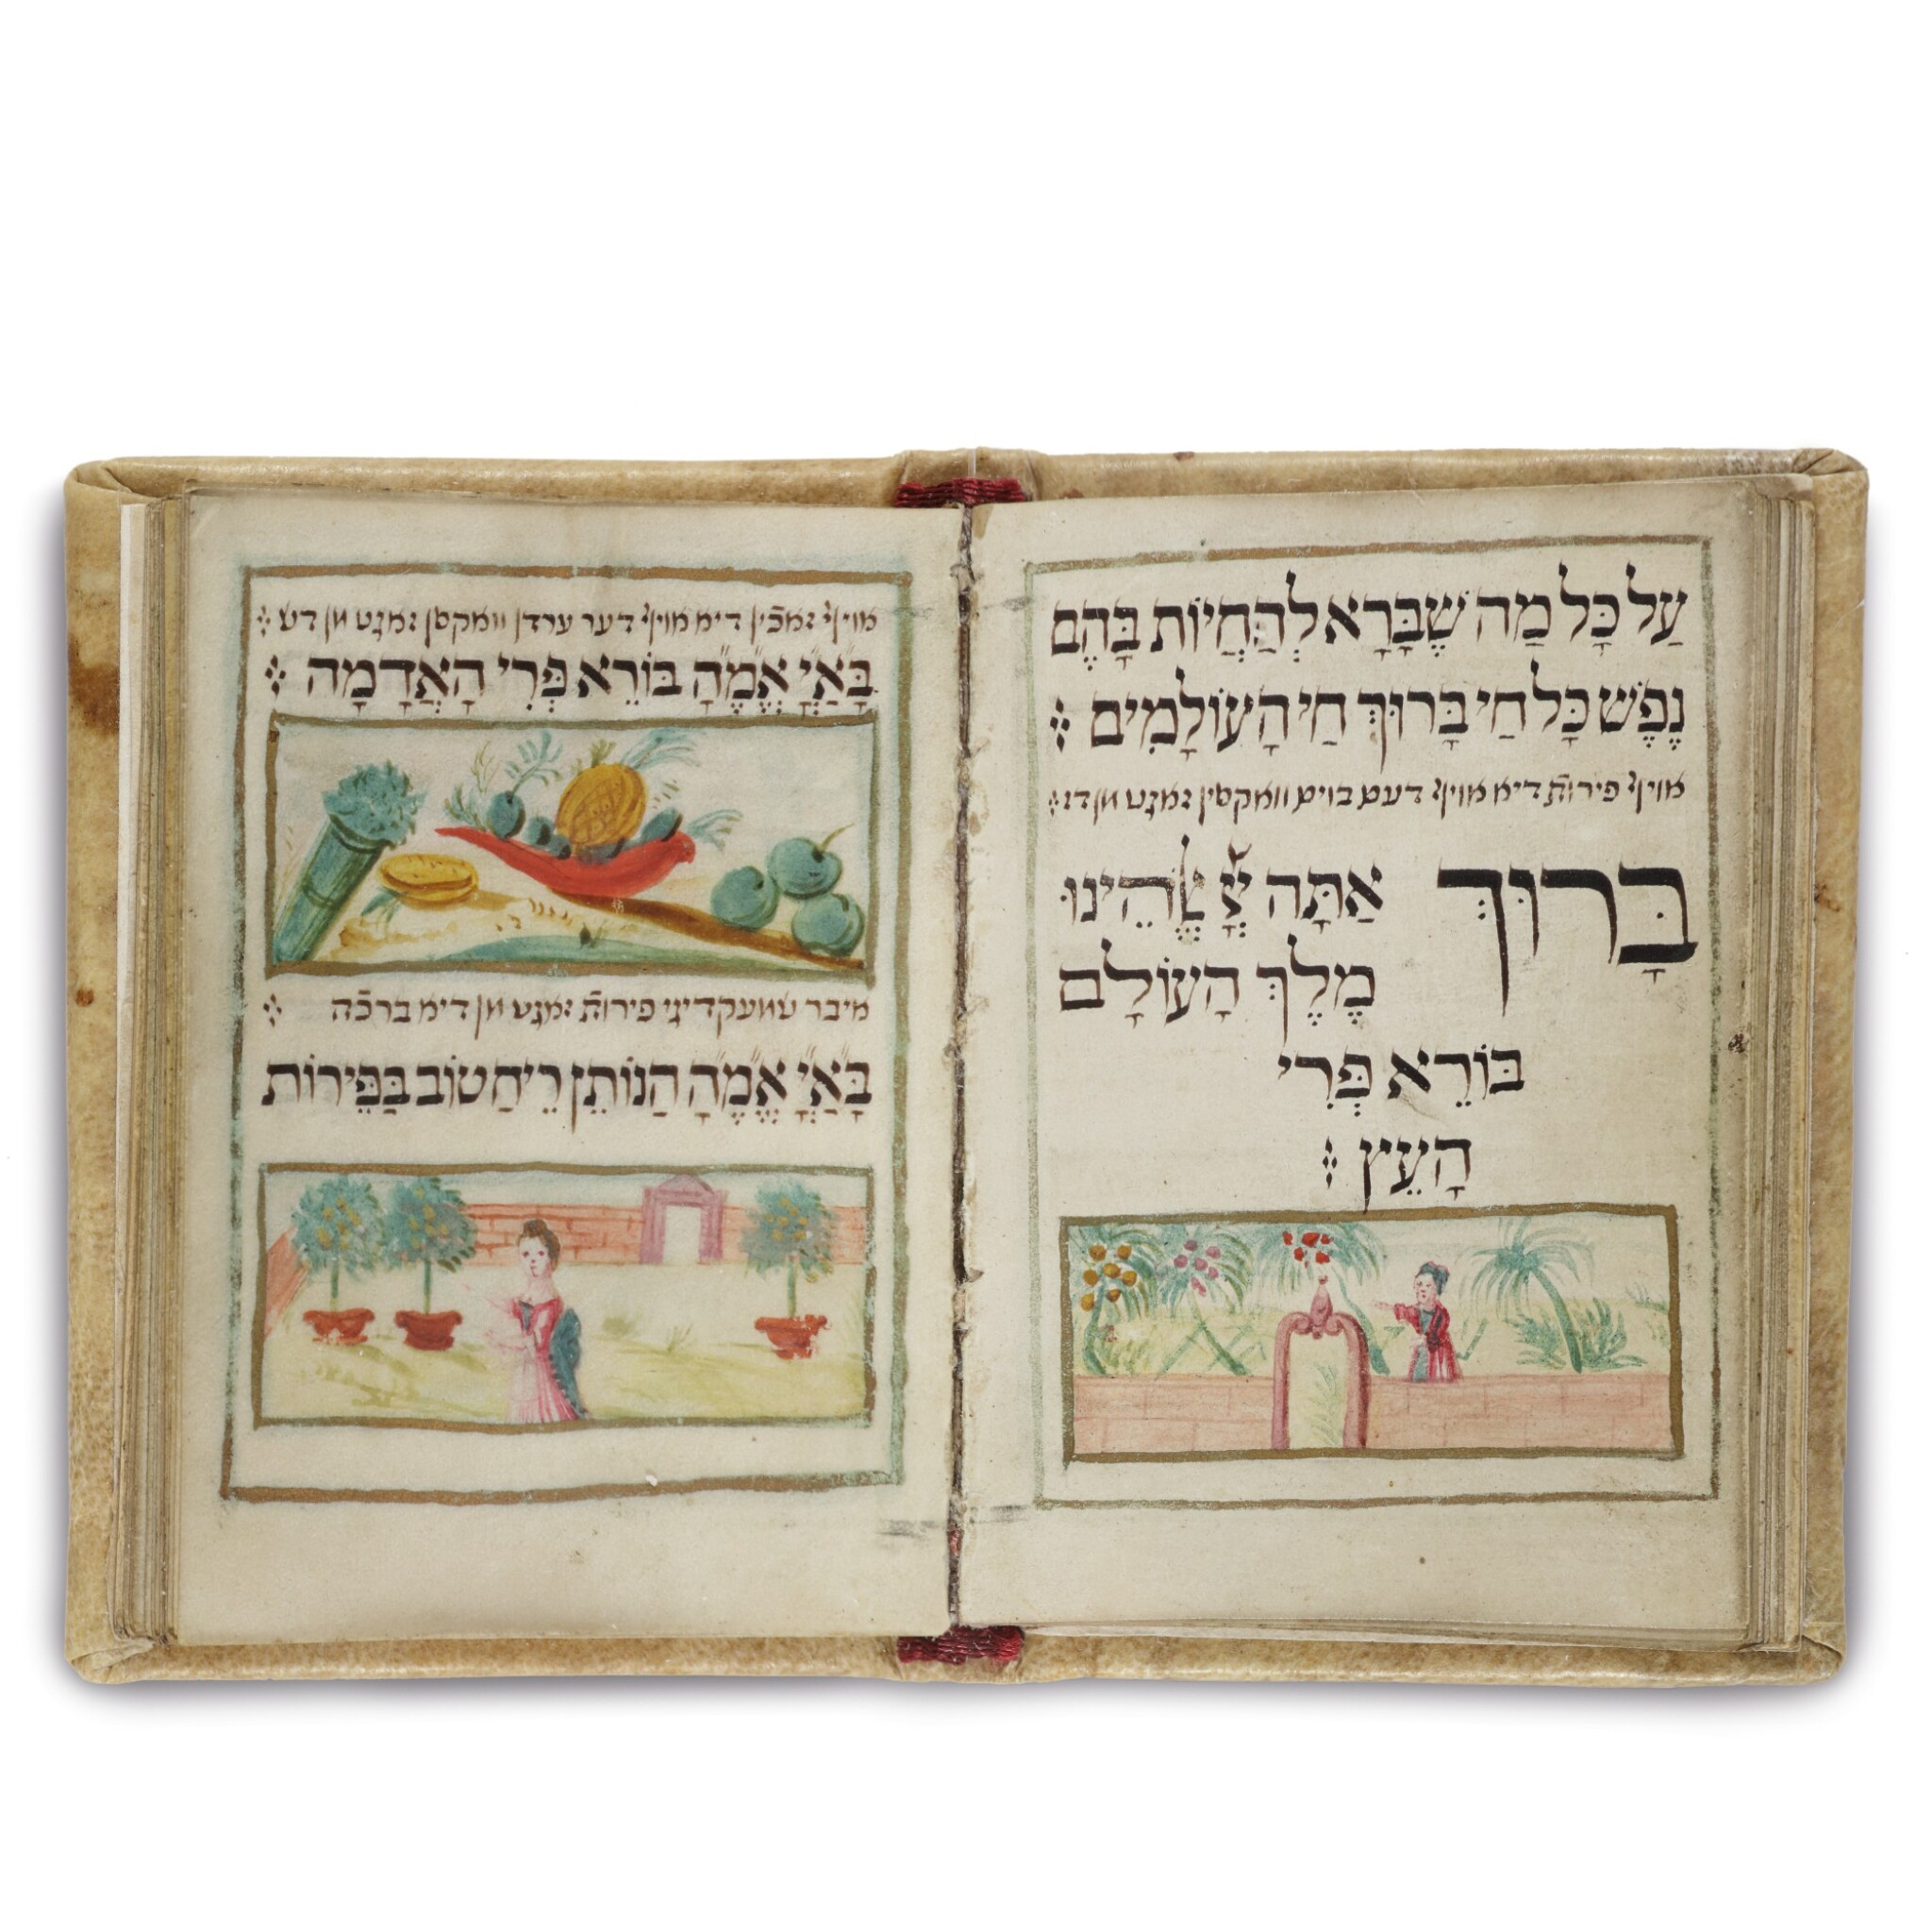 View full screen - View 1 of Lot 178. A RICHLY ILLUSTRATED MINIATURE BOOK OF PRAYERS, SEDER BIRKAT HA-MAZON U-BIRKHOT HA-NEHENIN (GRACE AFTER MEALS AND OCCASIONAL BLESSINGS), WRITTEN AND ILLUSTRATED BY NATHAN BEN SAMSON OF MESERITCH (MORAVIA), 1728.